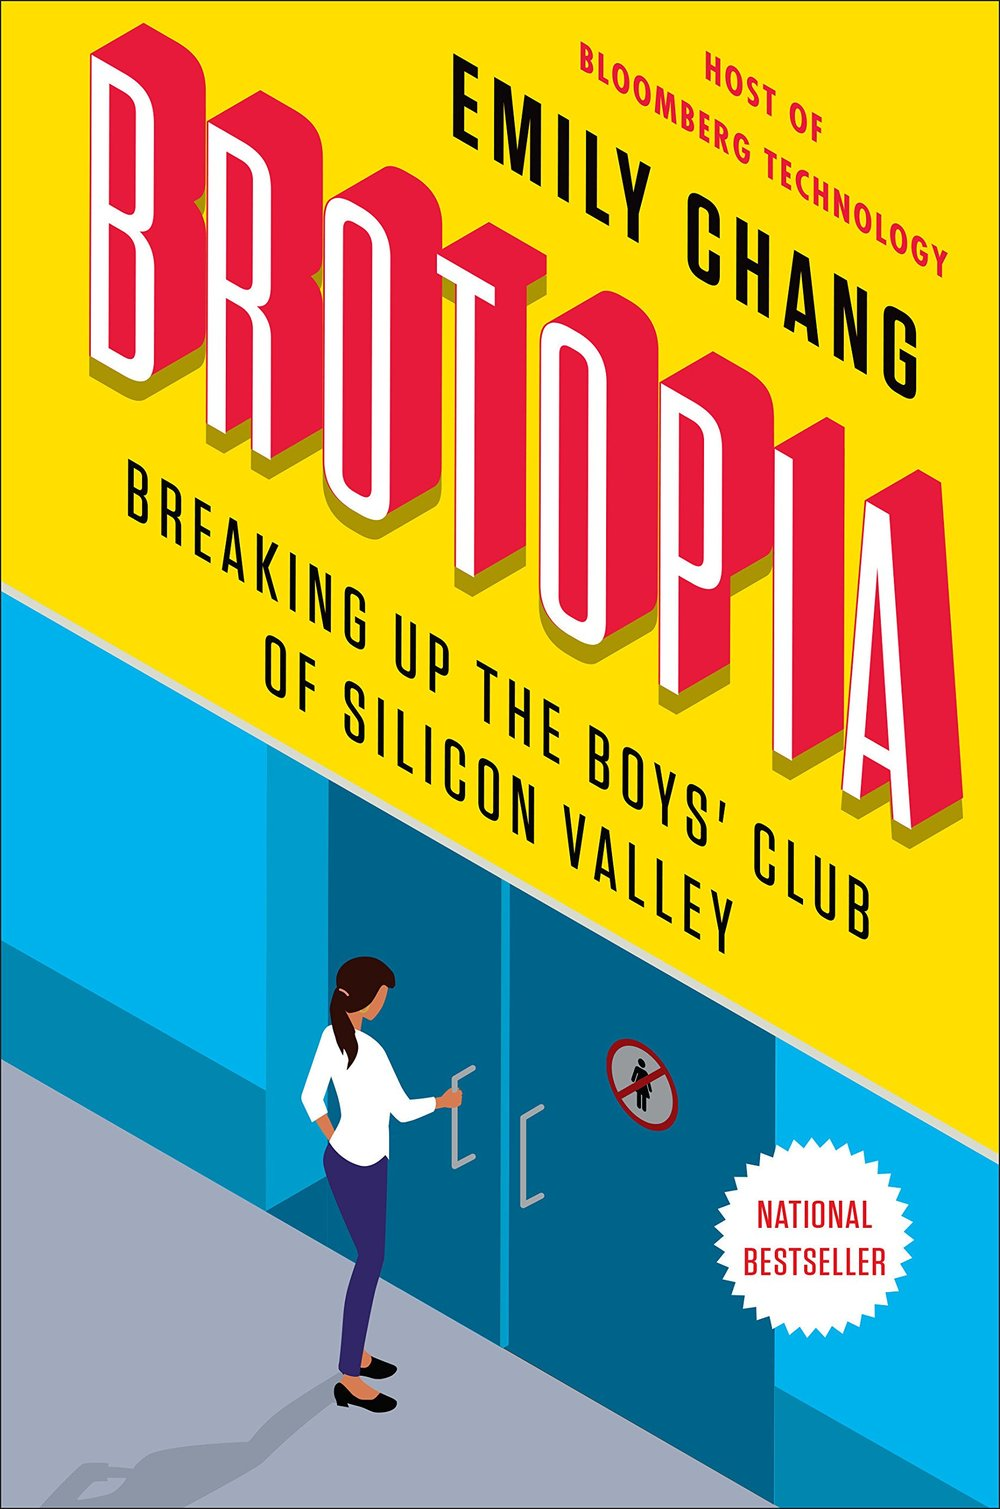 Career Books For Women - Brotopia by Emily Chang